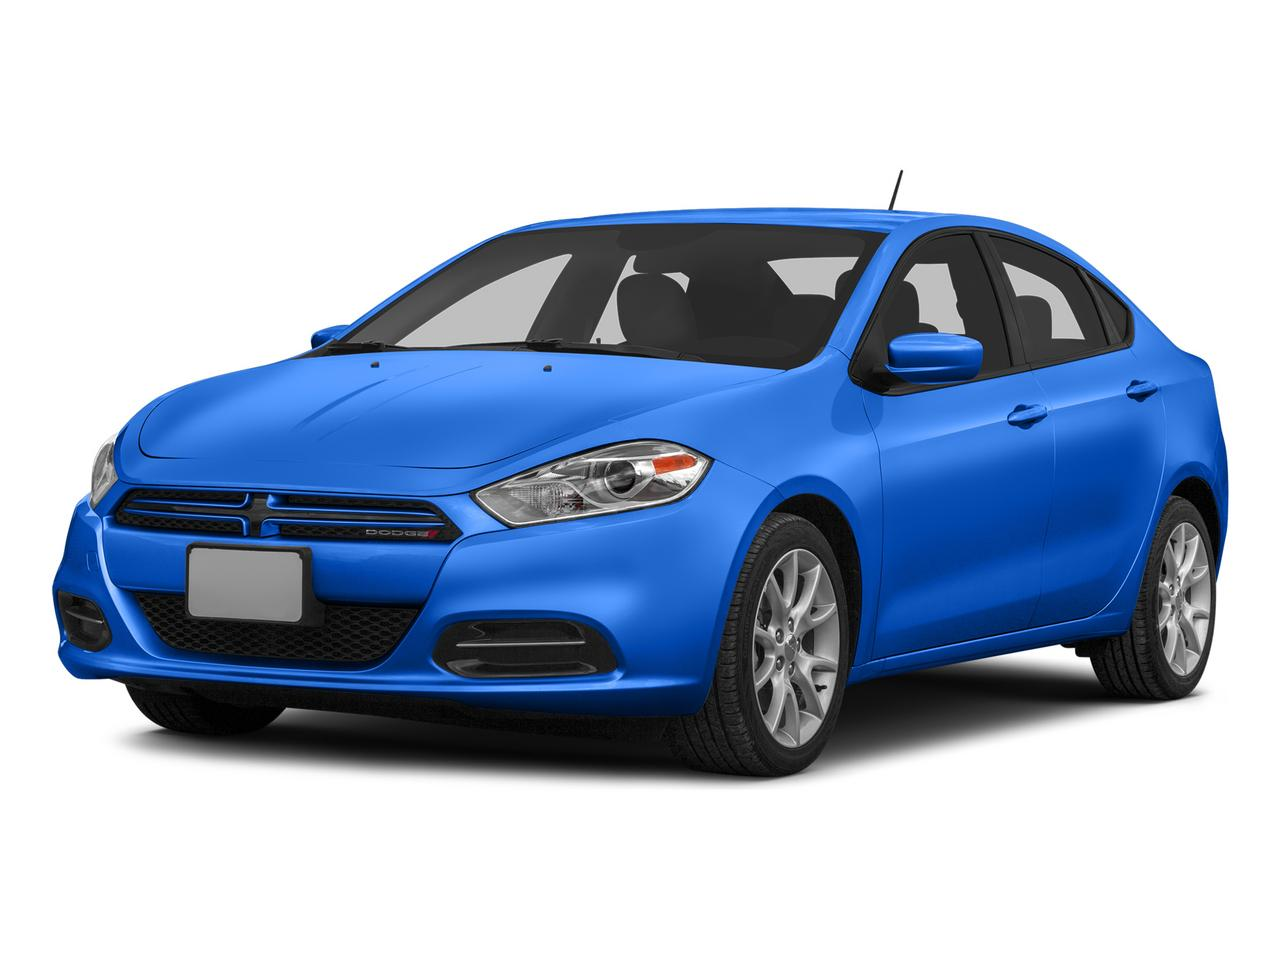 2015 Dodge Dart Vehicle Photo in Trinidad, CO 81082